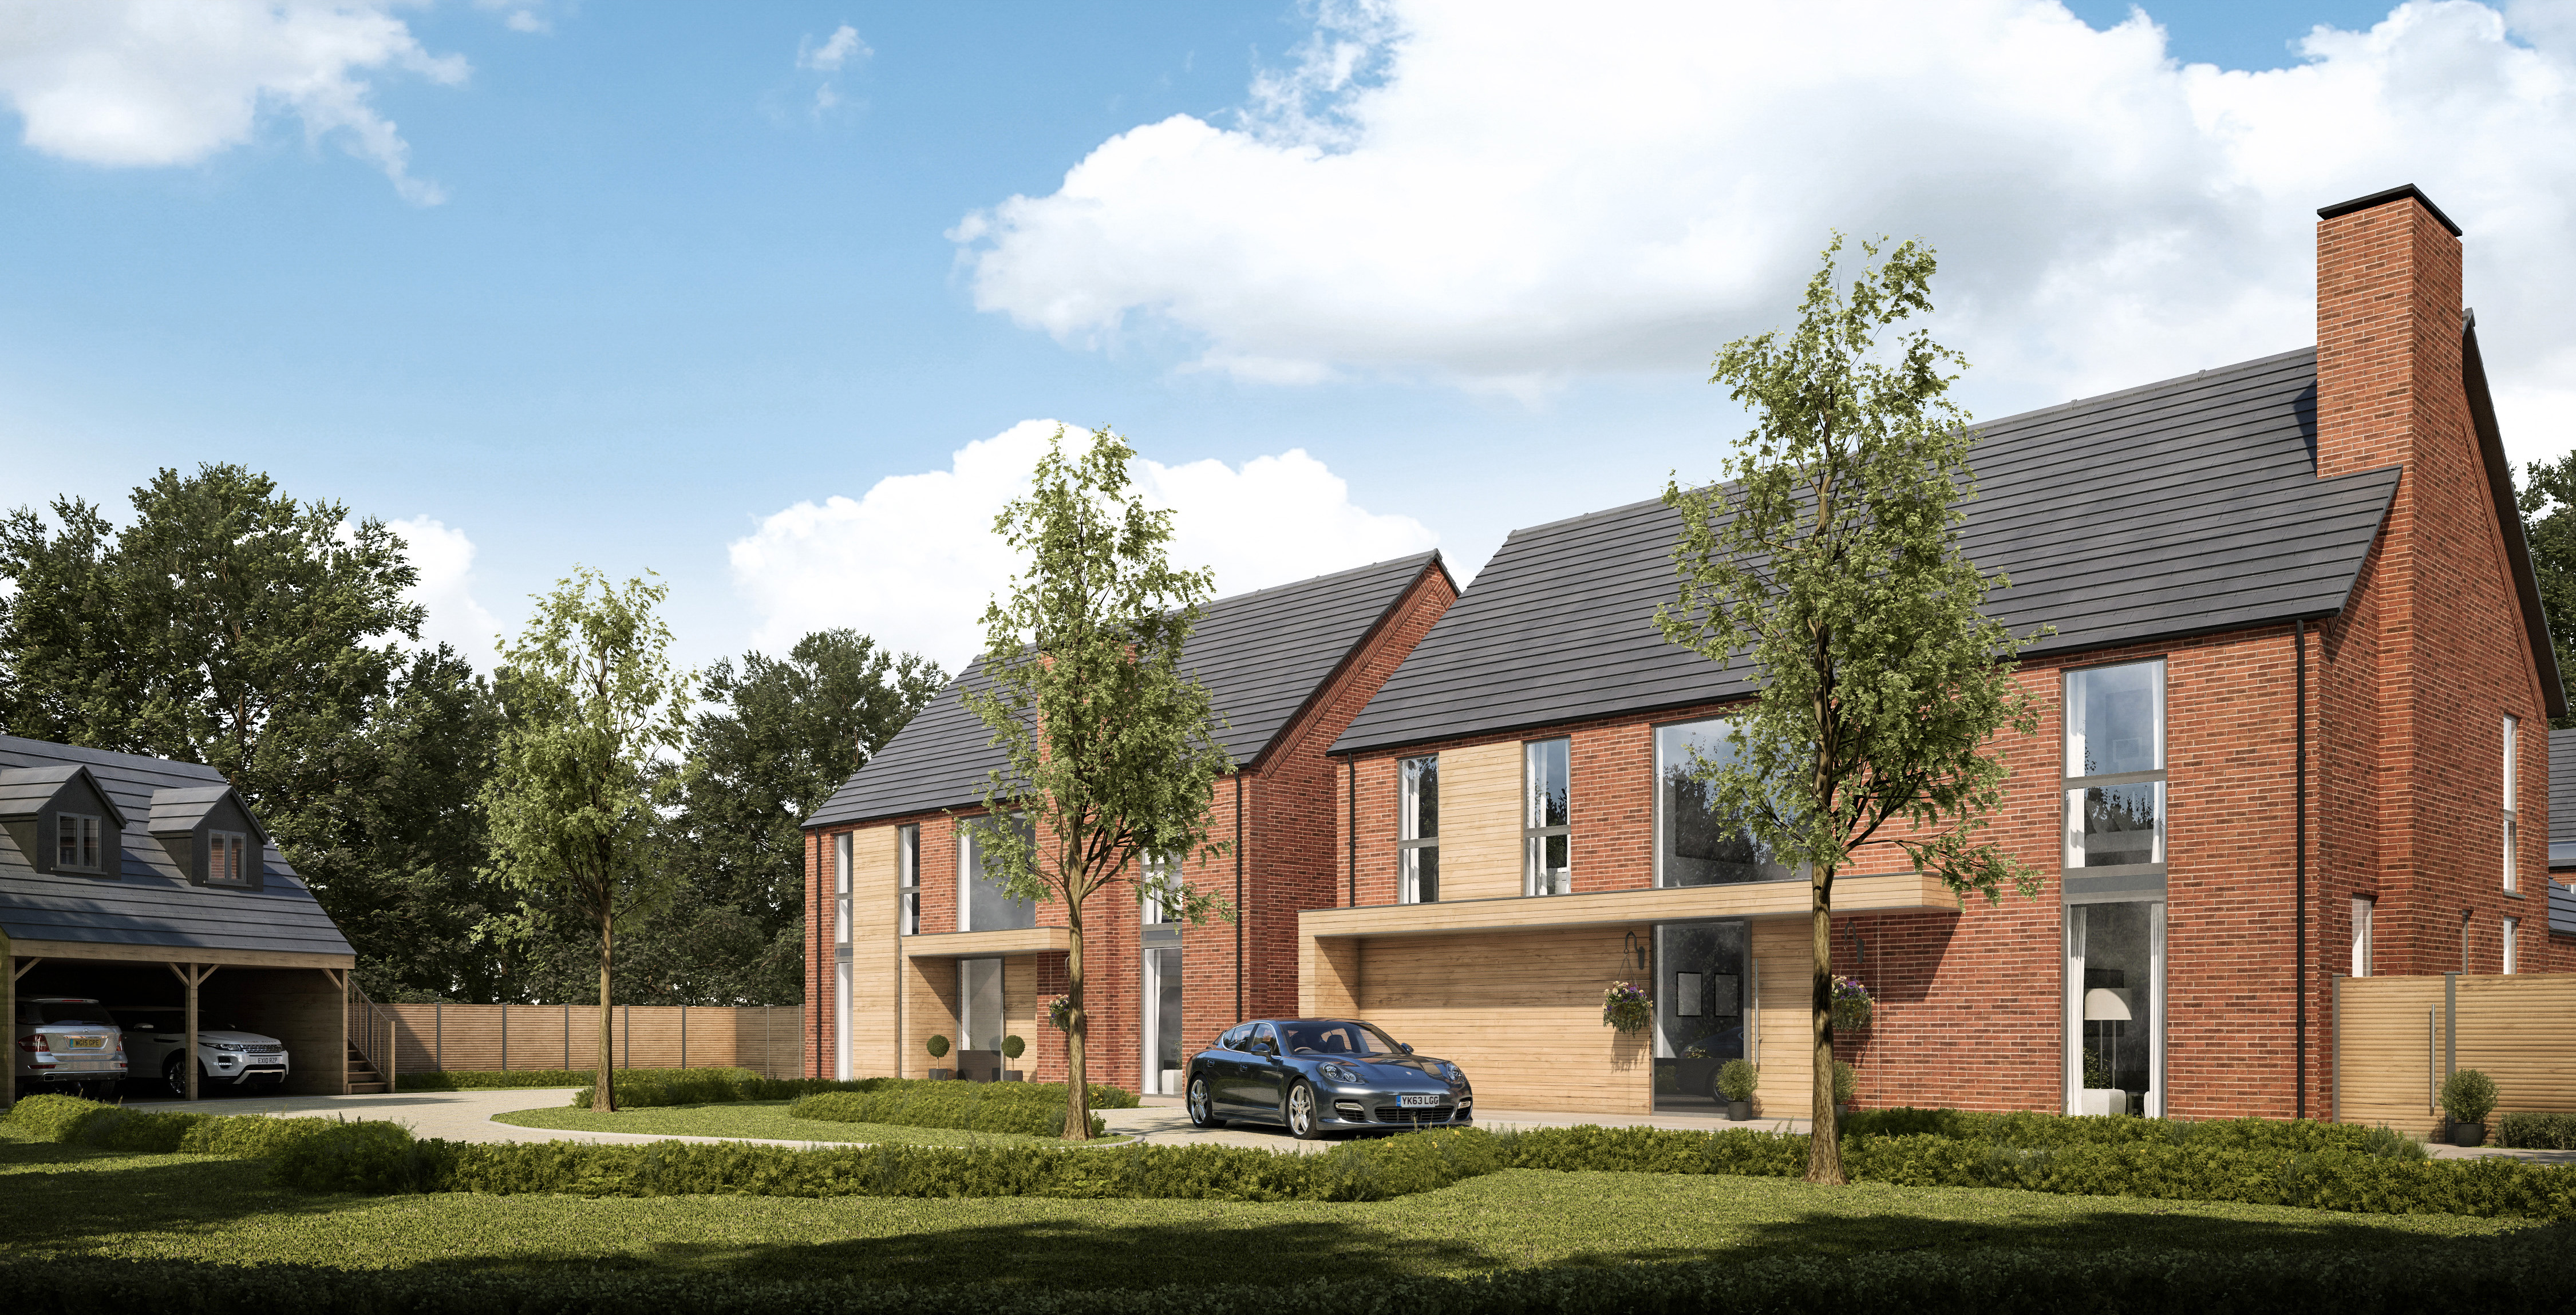 new homes in cheshire, goostrey, barn conversions, hillcrest homes